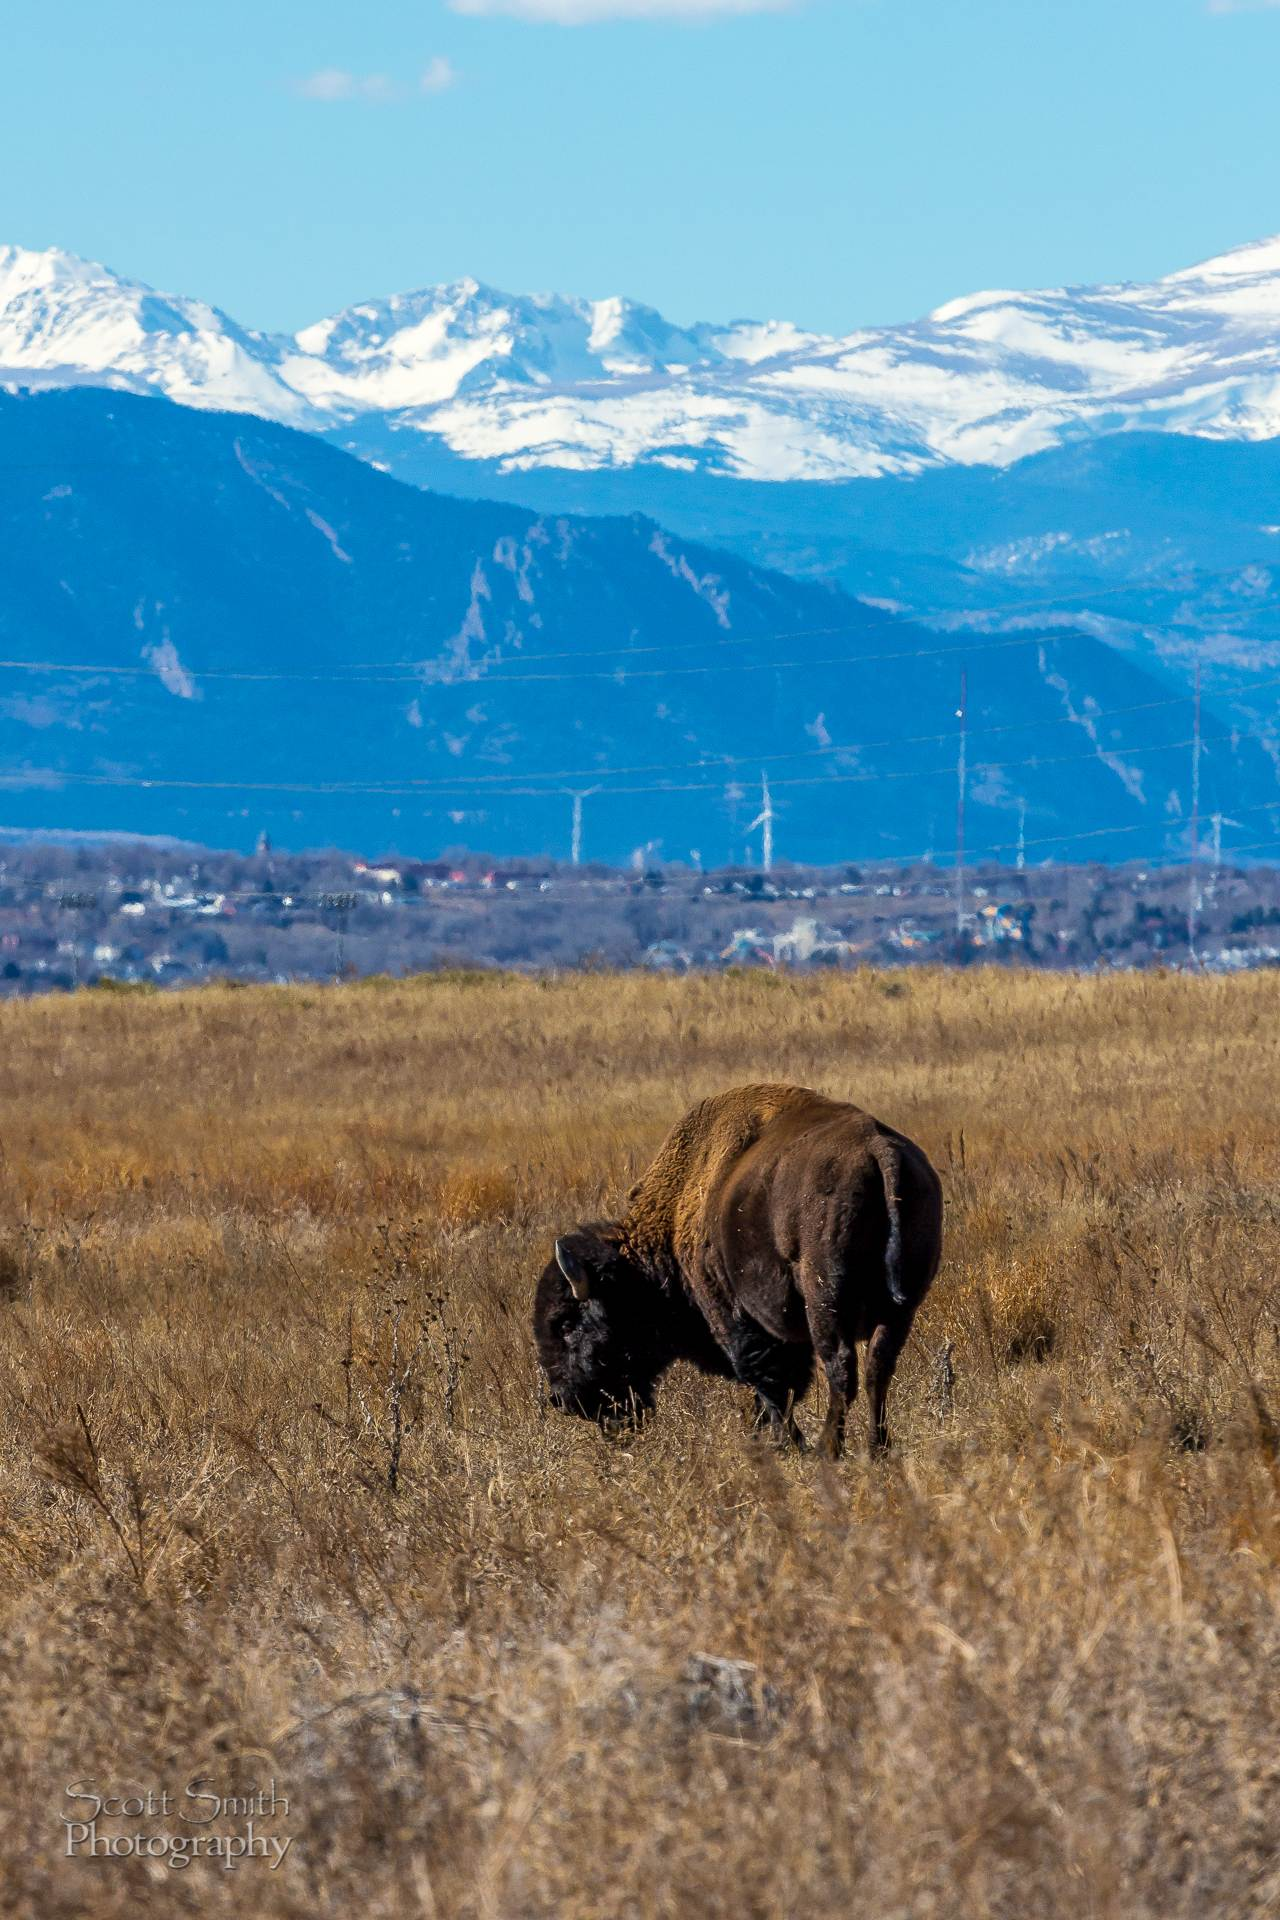 Bison 2 - The bison with Rocky Flats and the wind generators near Boulder Colorado in the distance. by D Scott Smith